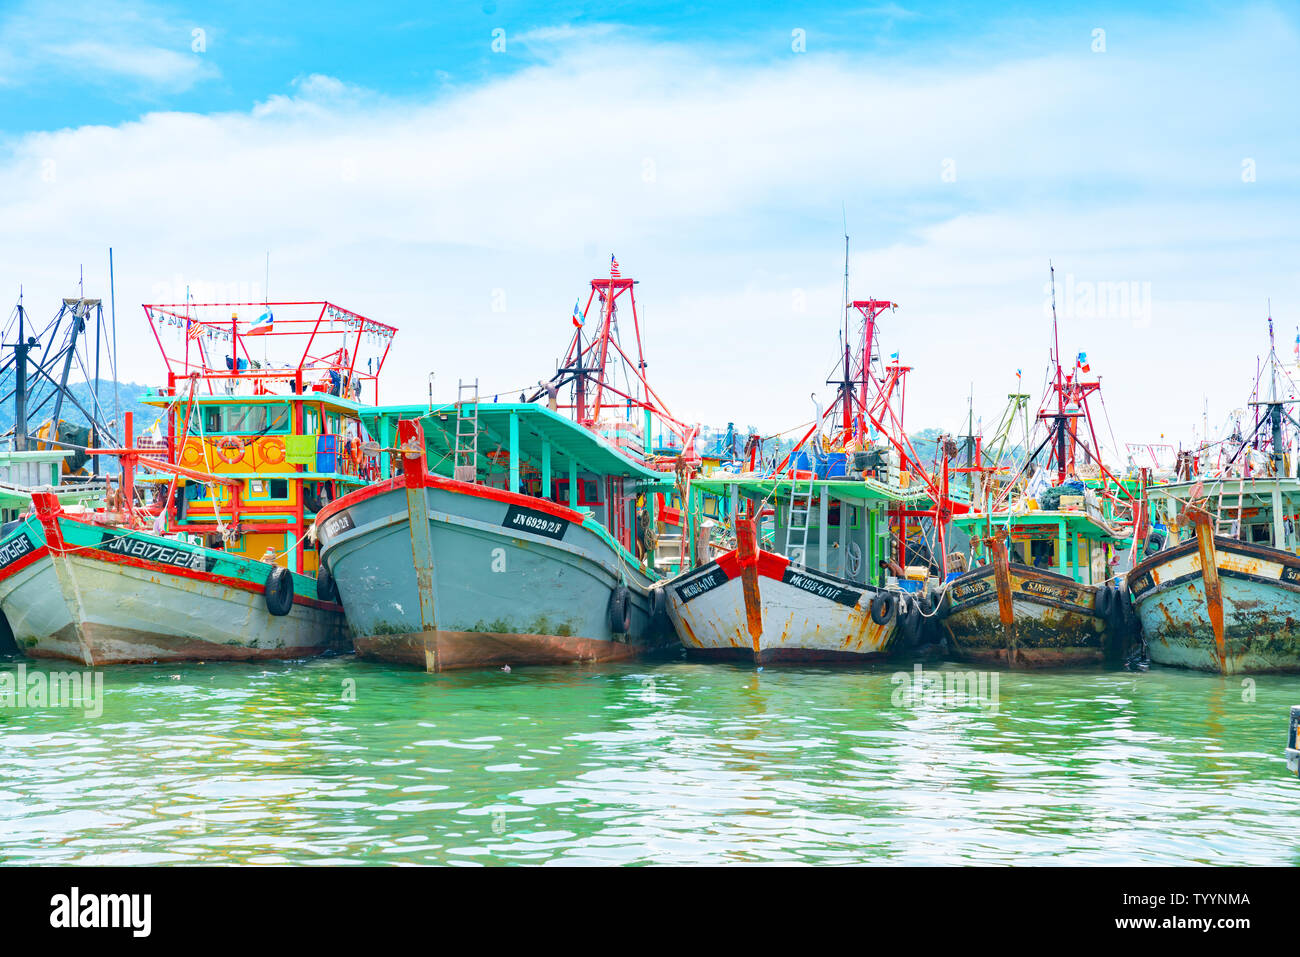 KOTA KINABALU BORNEO - MAY 31 2019; City fishing fleet moored at docks ready to head out again to catch - Stock Image